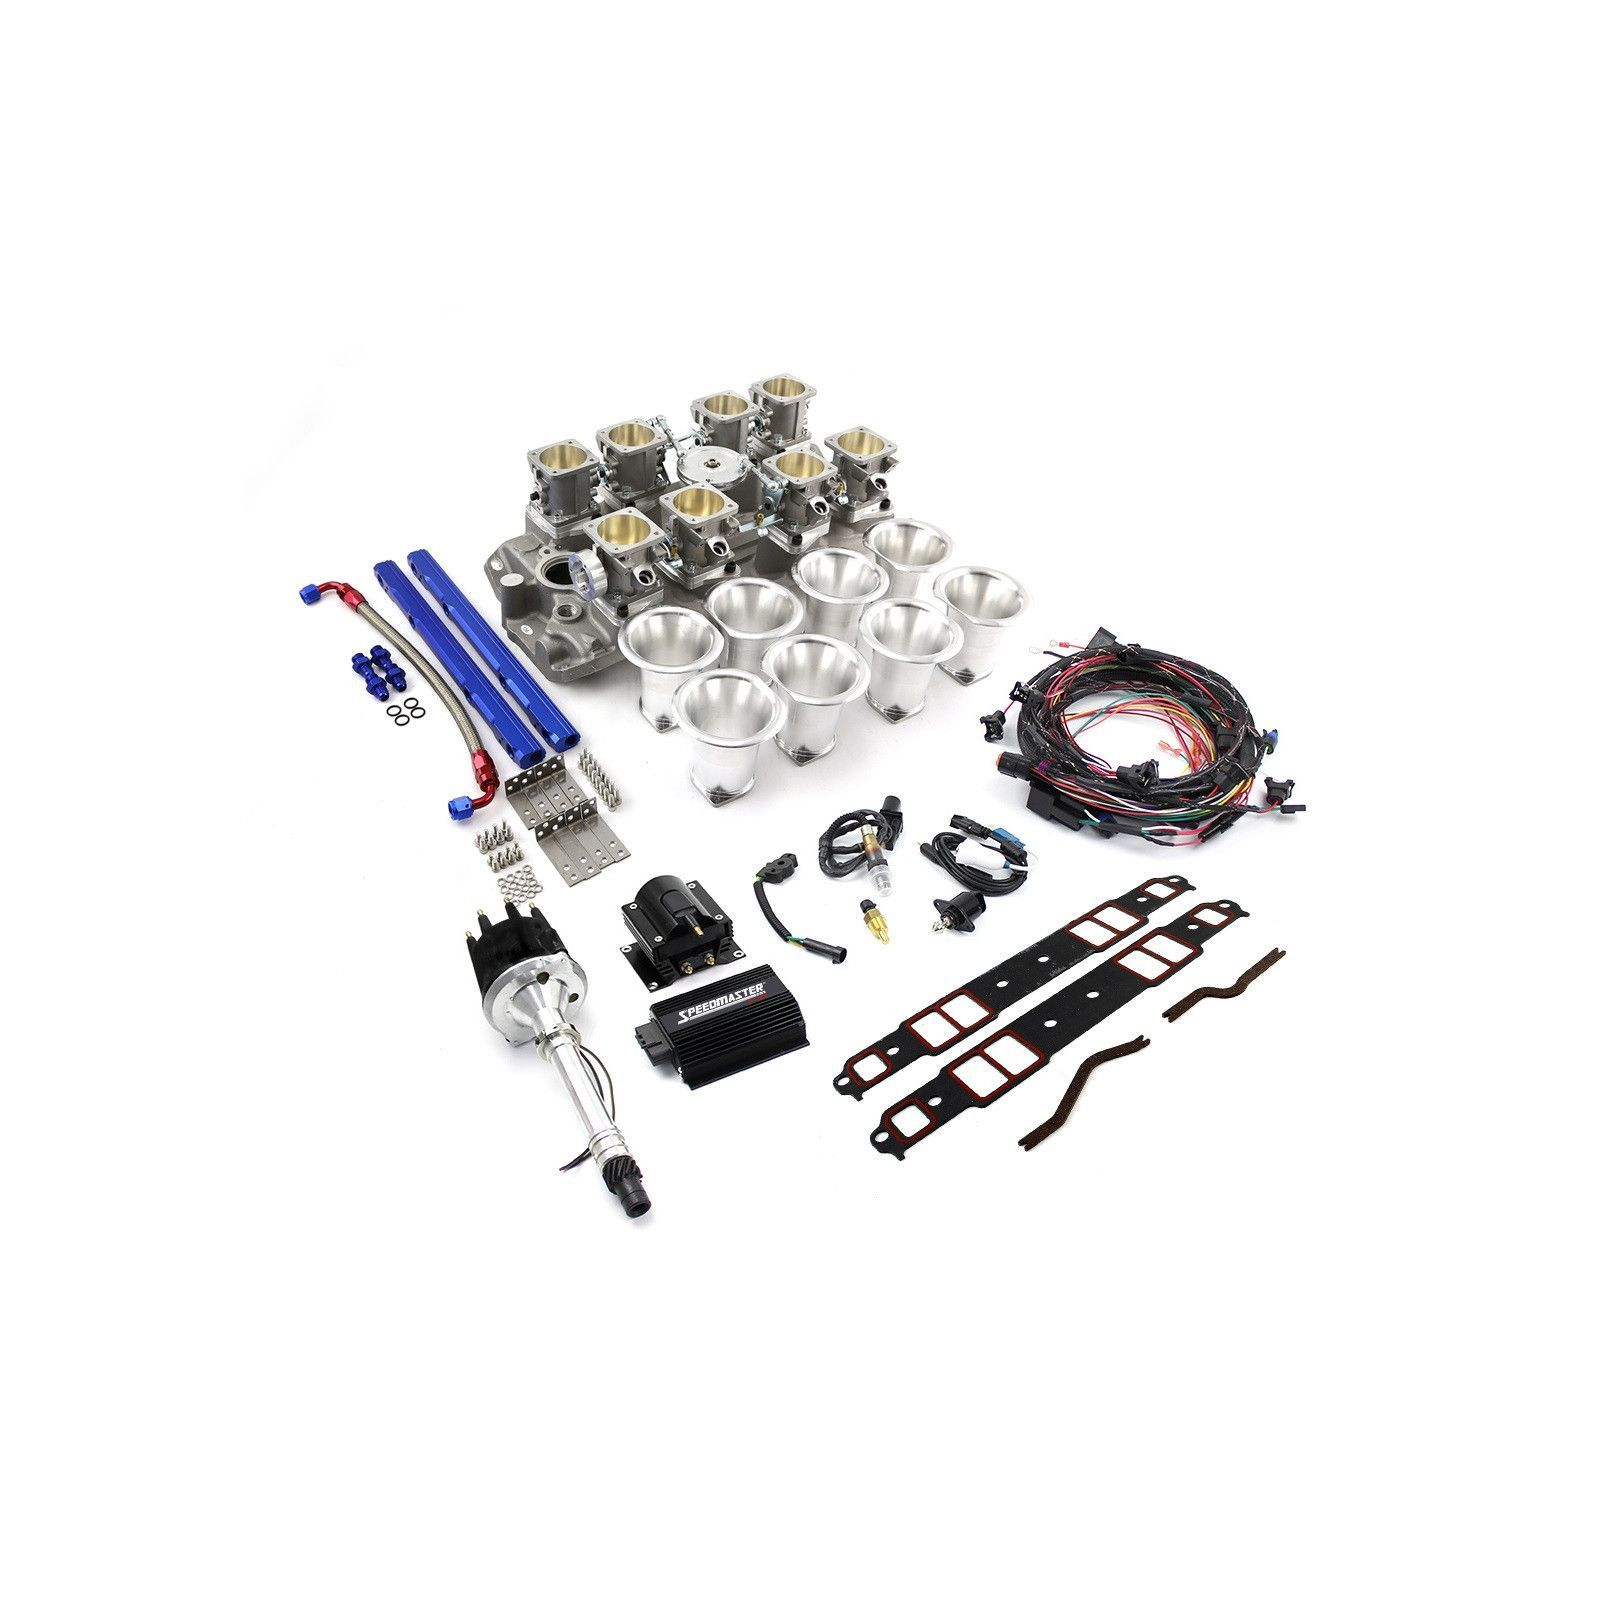 Chevy SBC Down Draft 8 Stack Turnkey EFI Individual